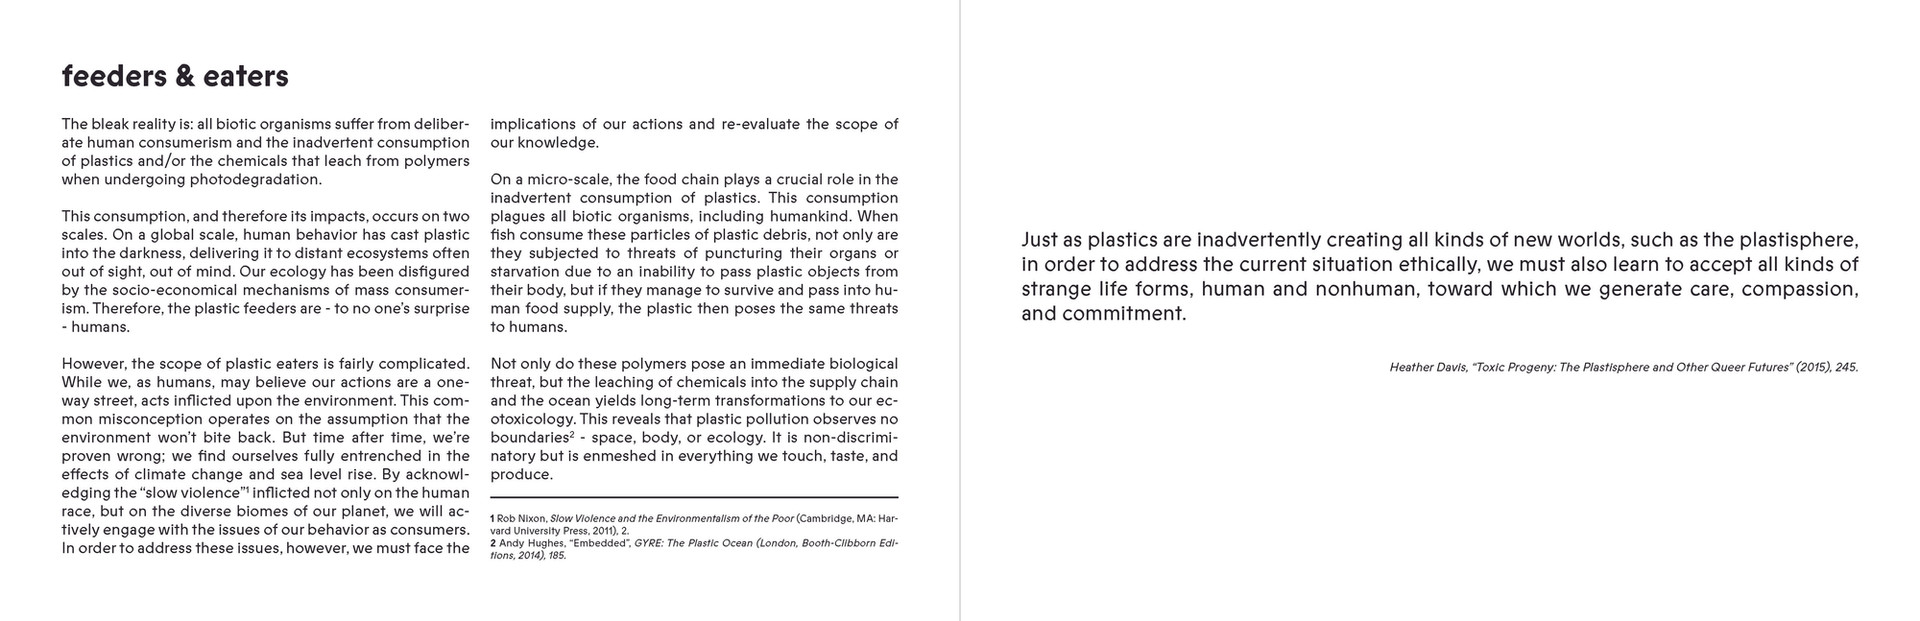 thesis book contents15.jpg